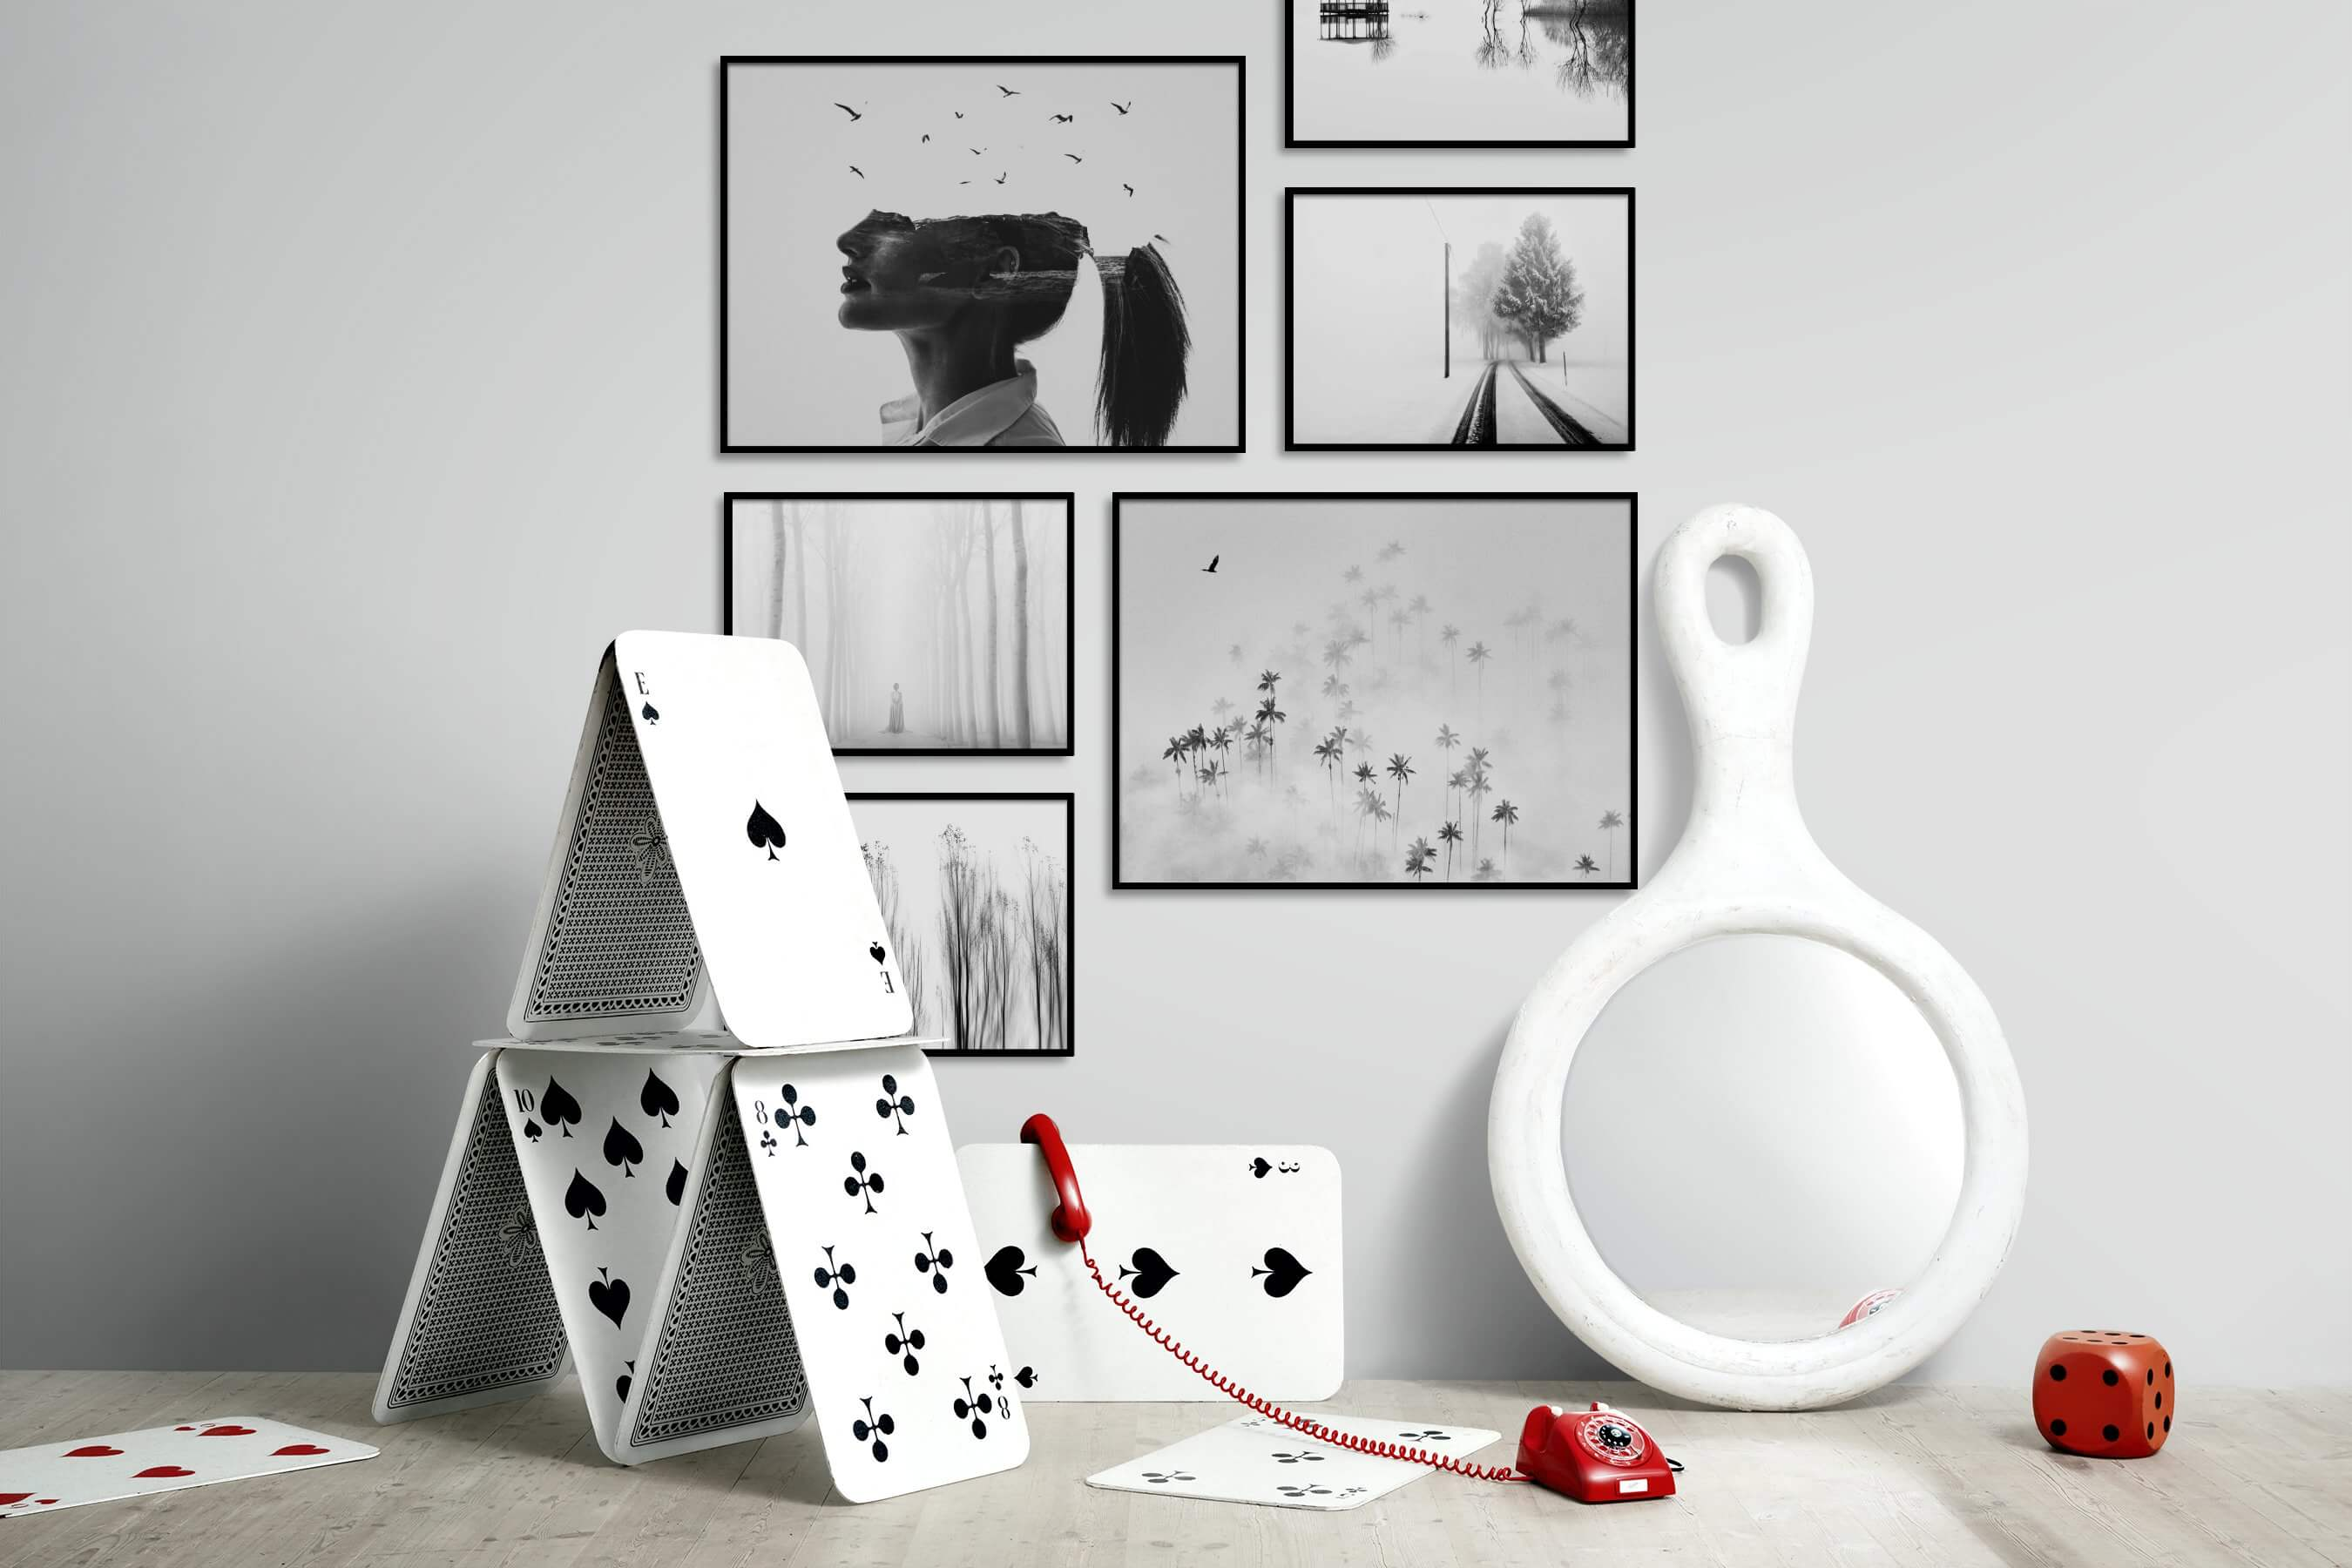 Gallery wall idea with six framed pictures arranged on a wall depicting Artsy, Black & White, For the Minimalist, Bright Tones, Country Life, Nature, Mindfulness, and For the Moderate